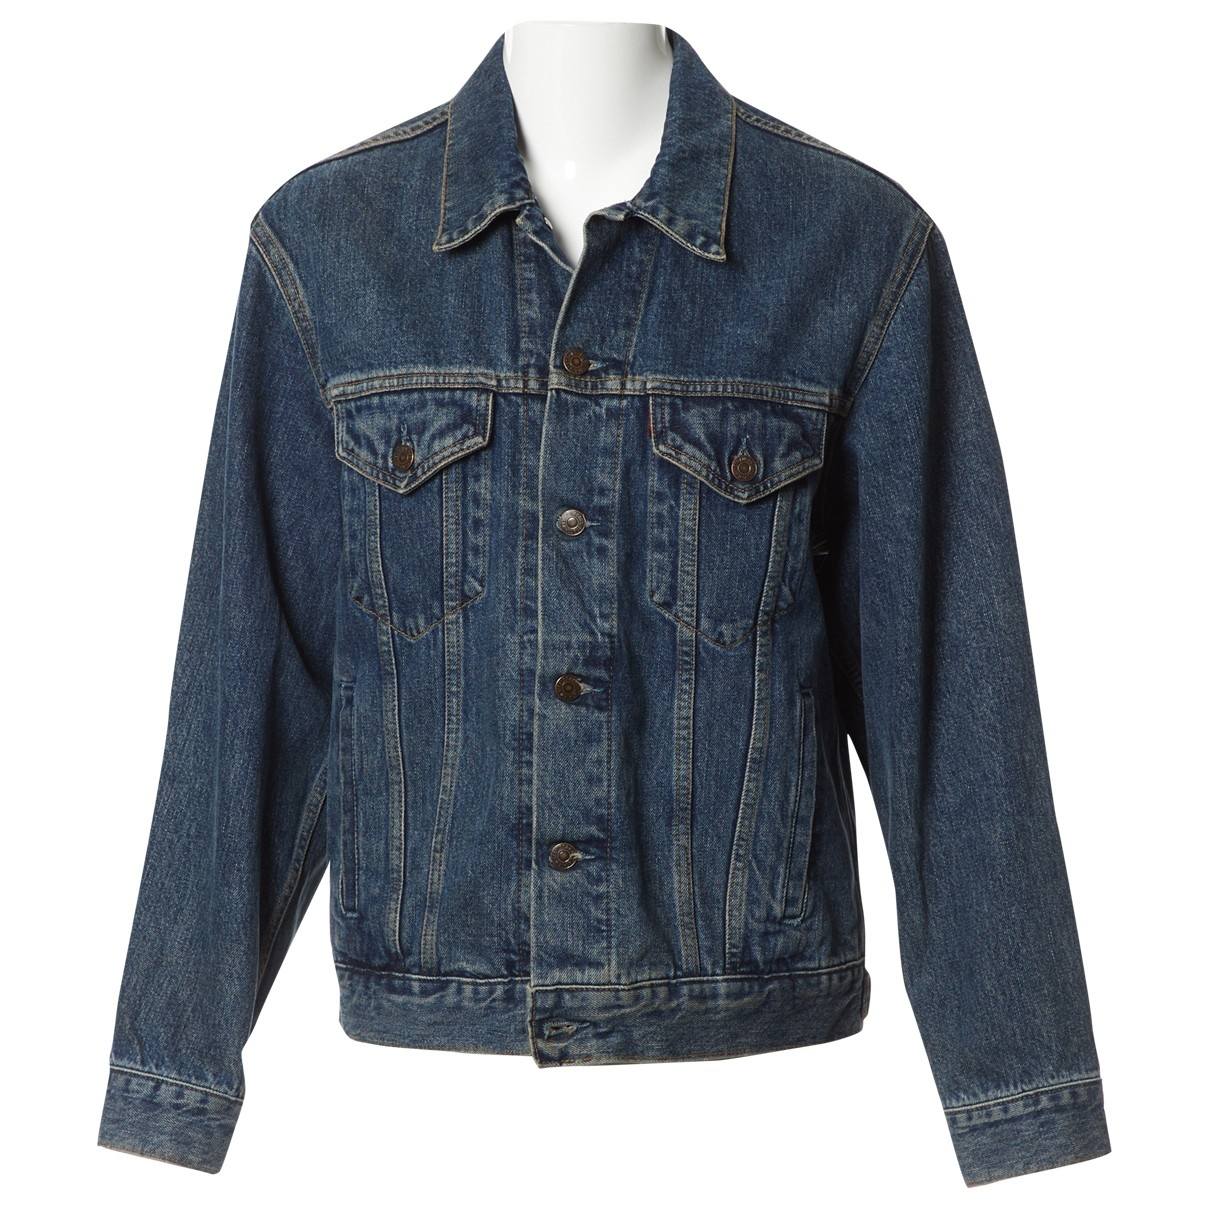 Levi's \N Blue Denim - Jeans jacket for Women M International